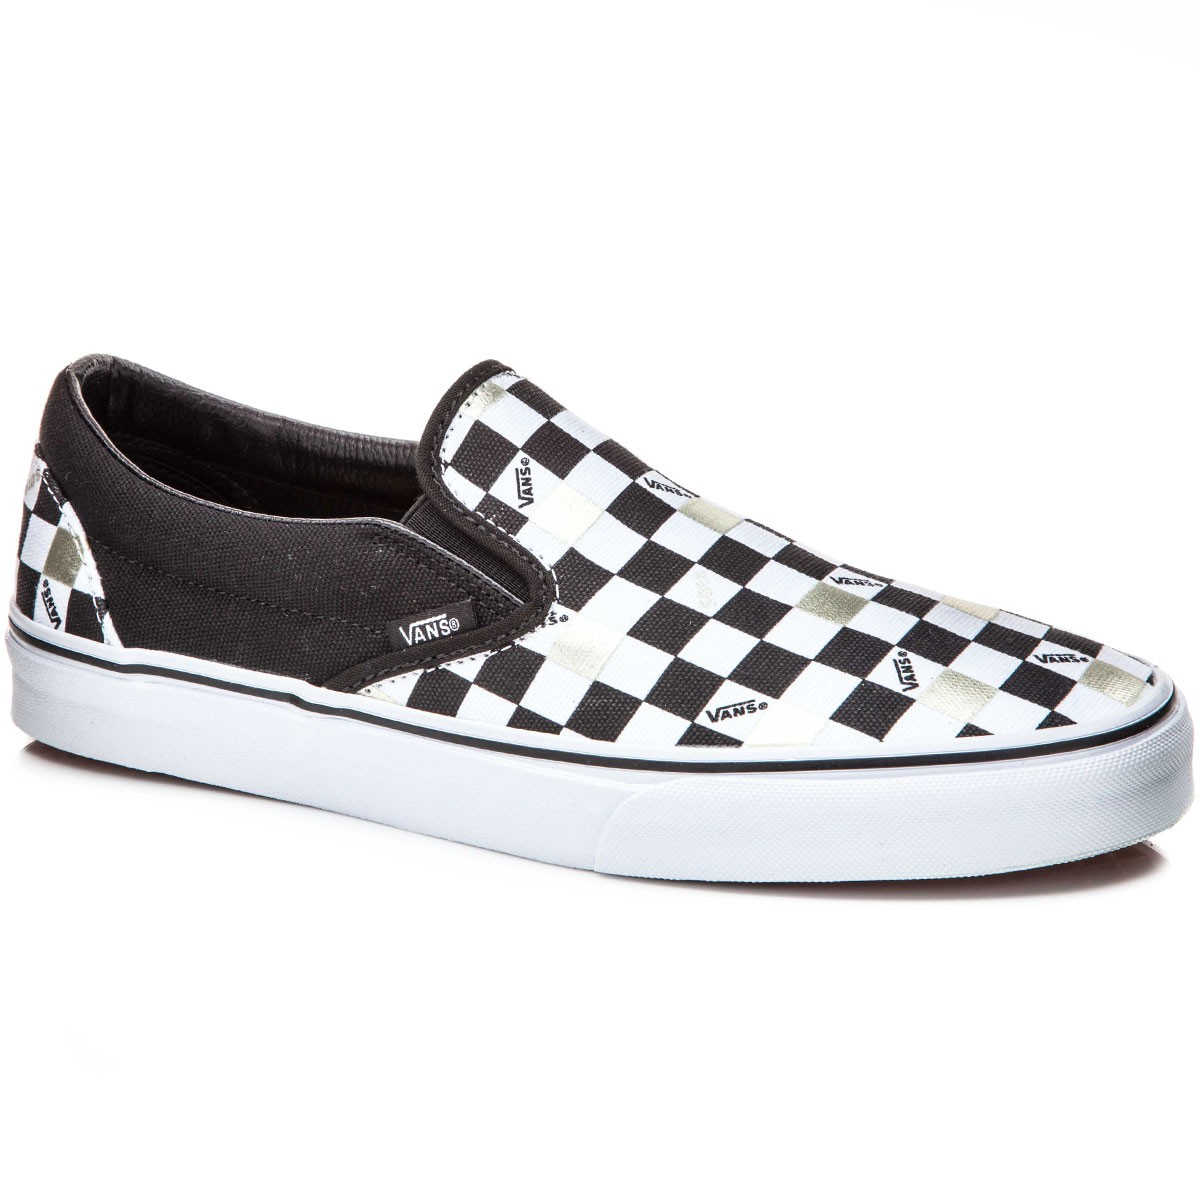 Vans Classic Slip-On Shoes - Black/Gold Checker - 8.0